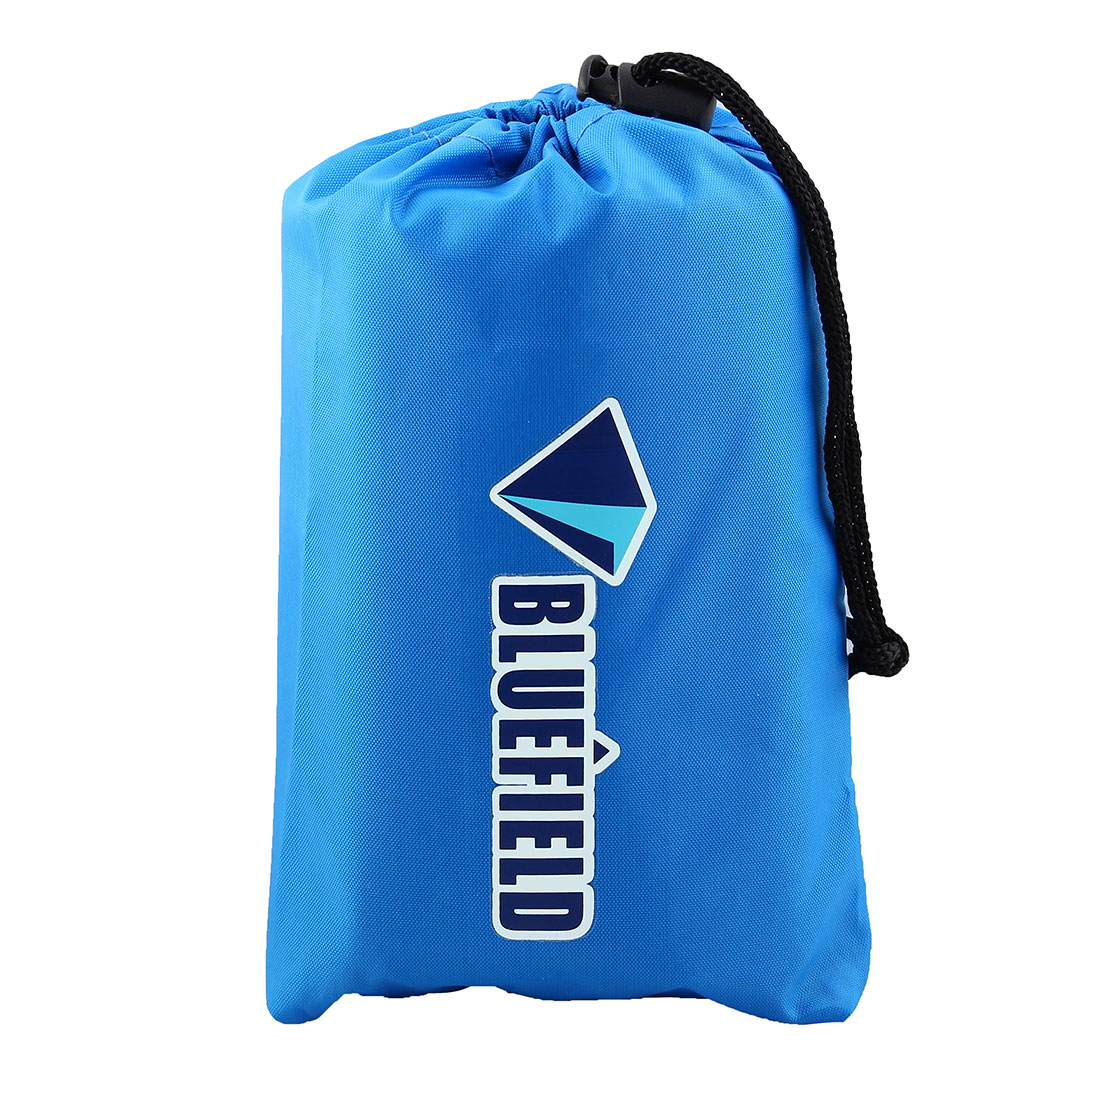 Bluefield Authorized Travel Outdoor Water Resistant Picnic Blanket Foldable Camping Mat Pad Blue